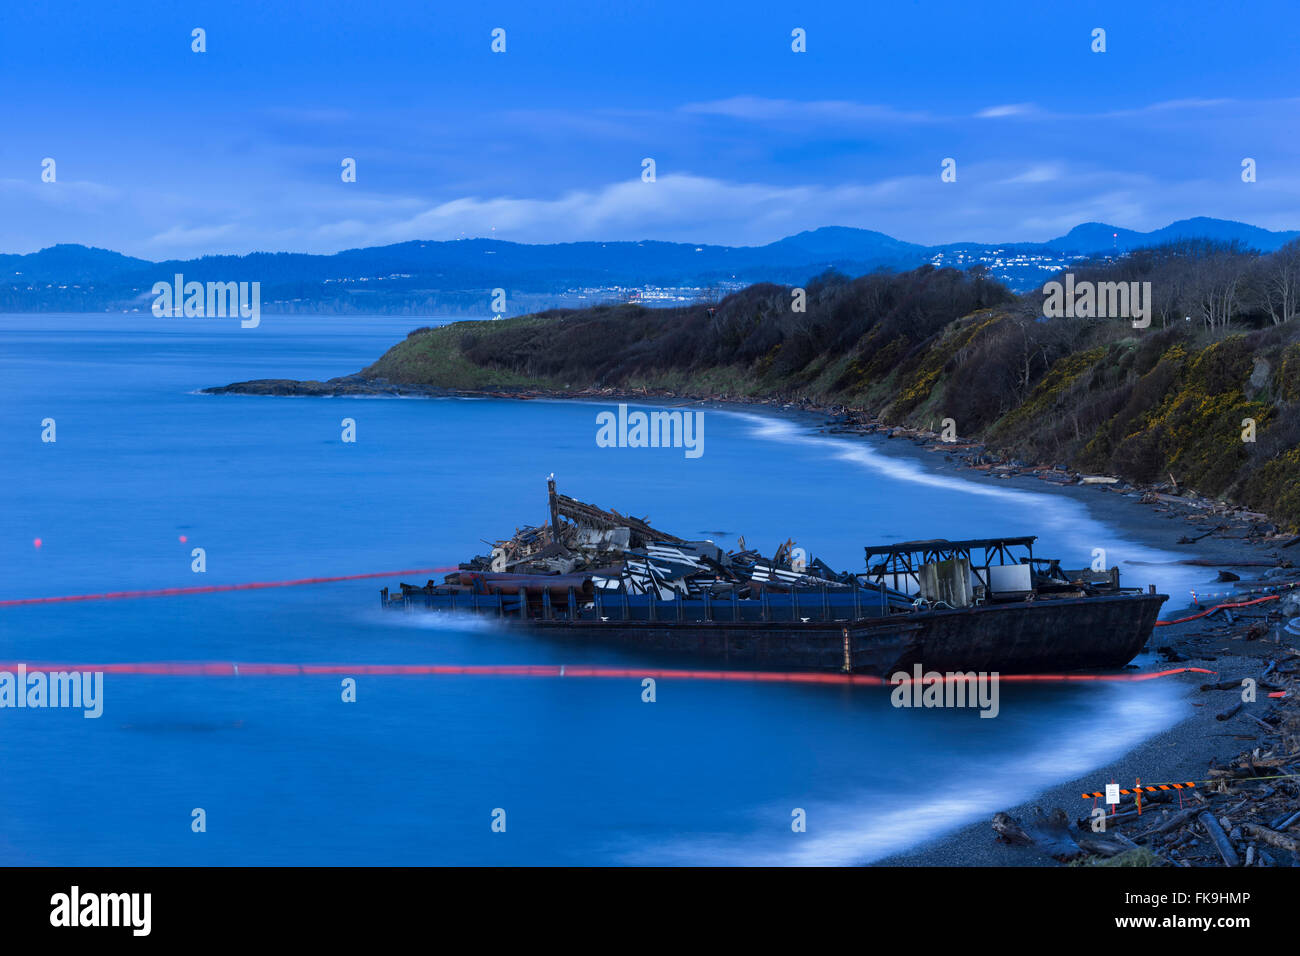 Stranded beached barge loaded with construction debris on Clover Point beach-Victoria, British Columbia, Canada. - Stock Image